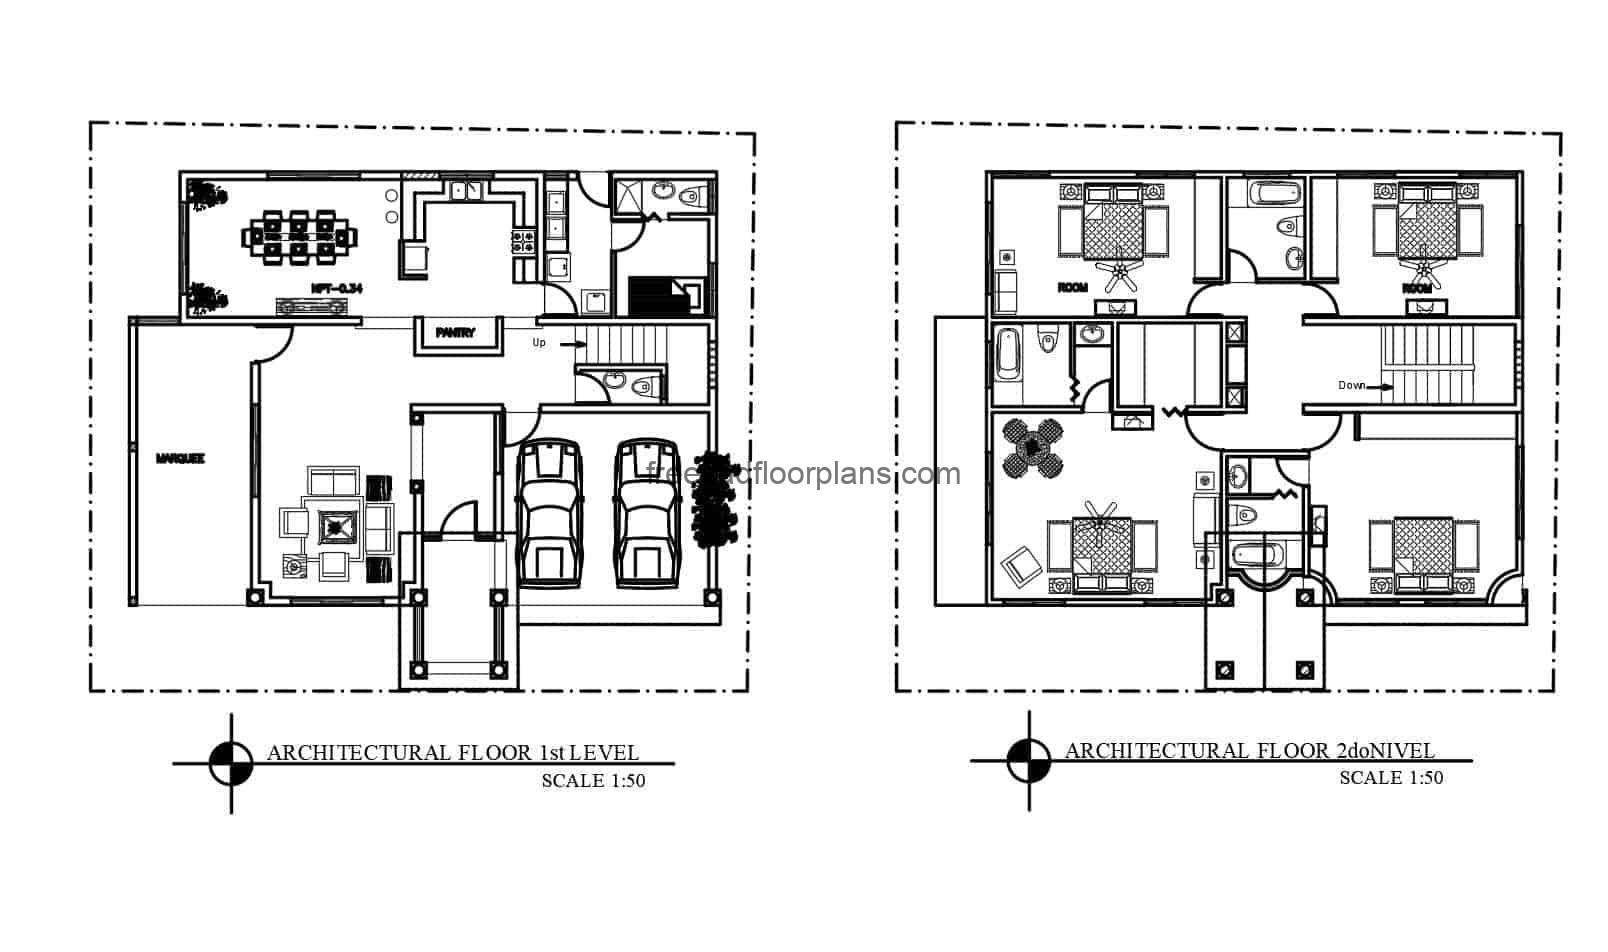 Two-level house complete project in DWG format, complete project plans for free download, architectural plan, dimensioning, electrical plans, sanitary, foundations, technical details, sections, elevations.